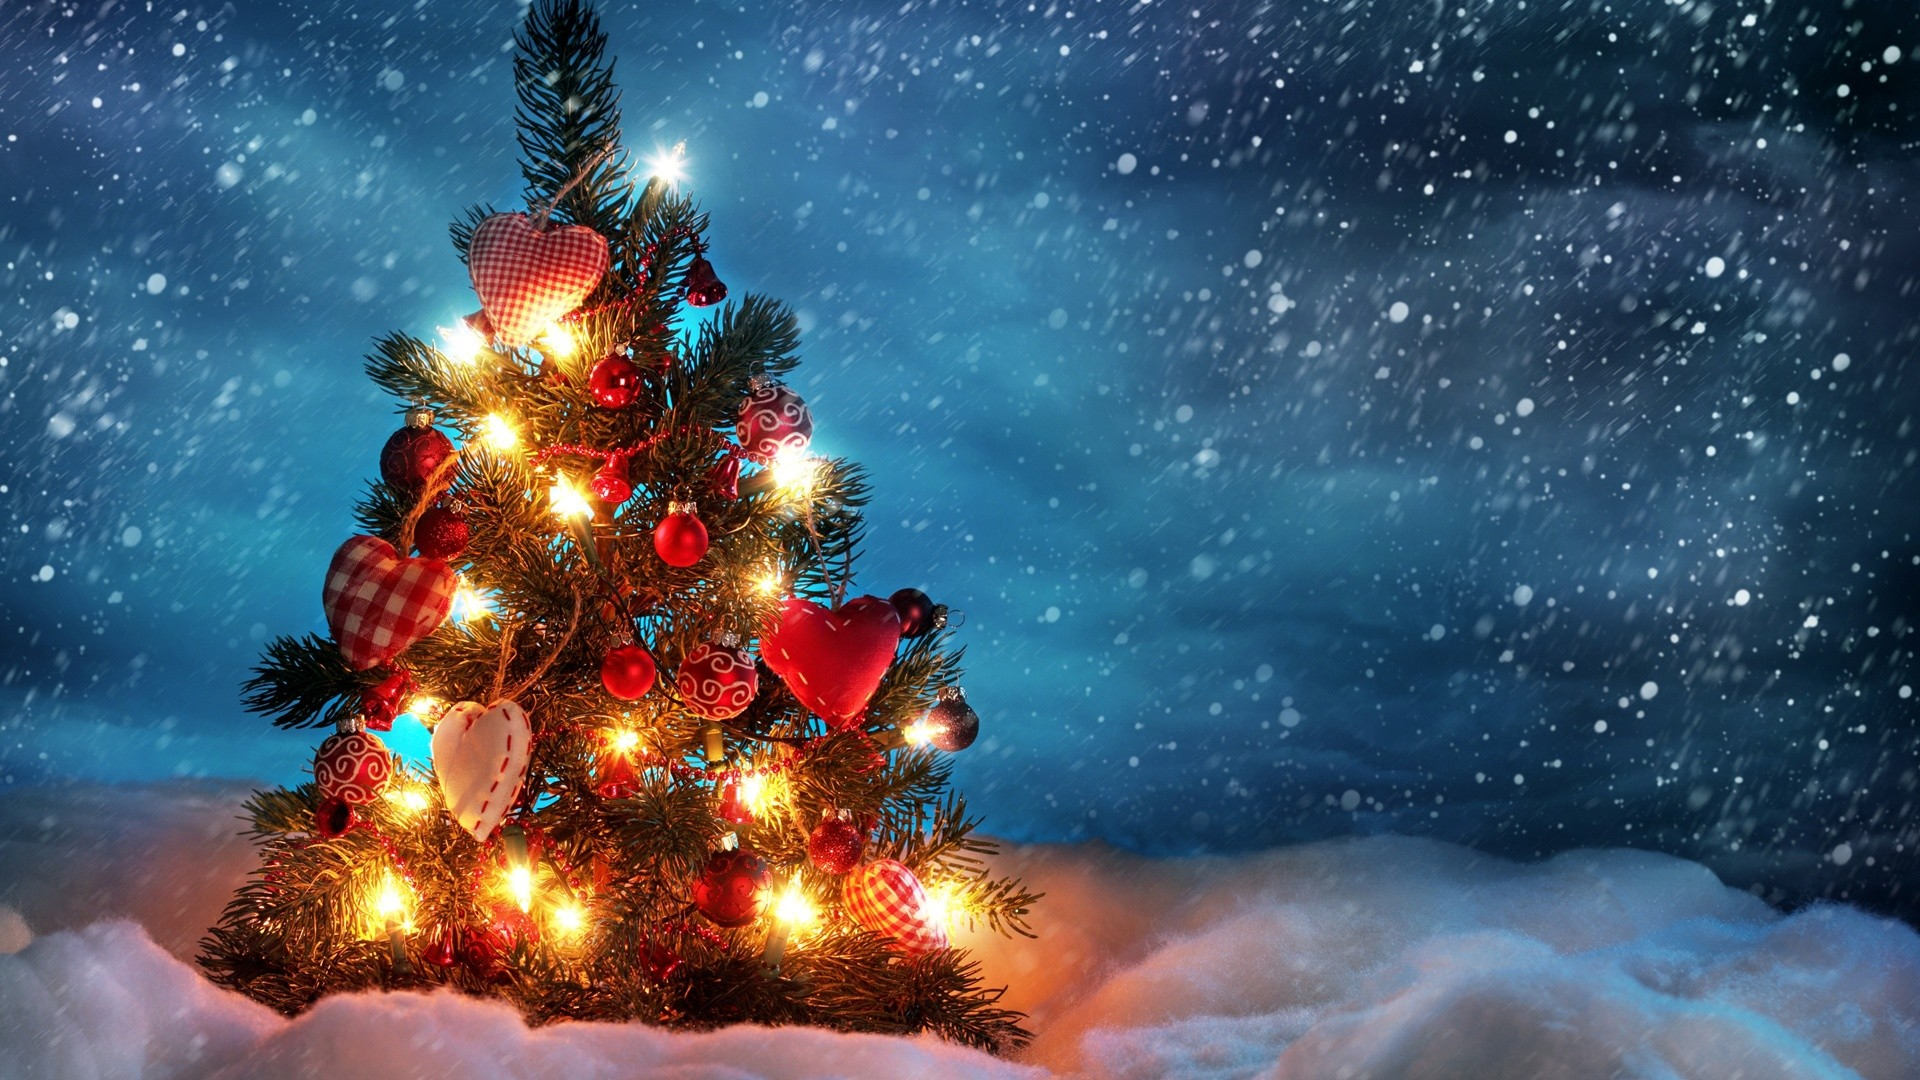 1920x1080 Christmas Wallpapers Widescreen